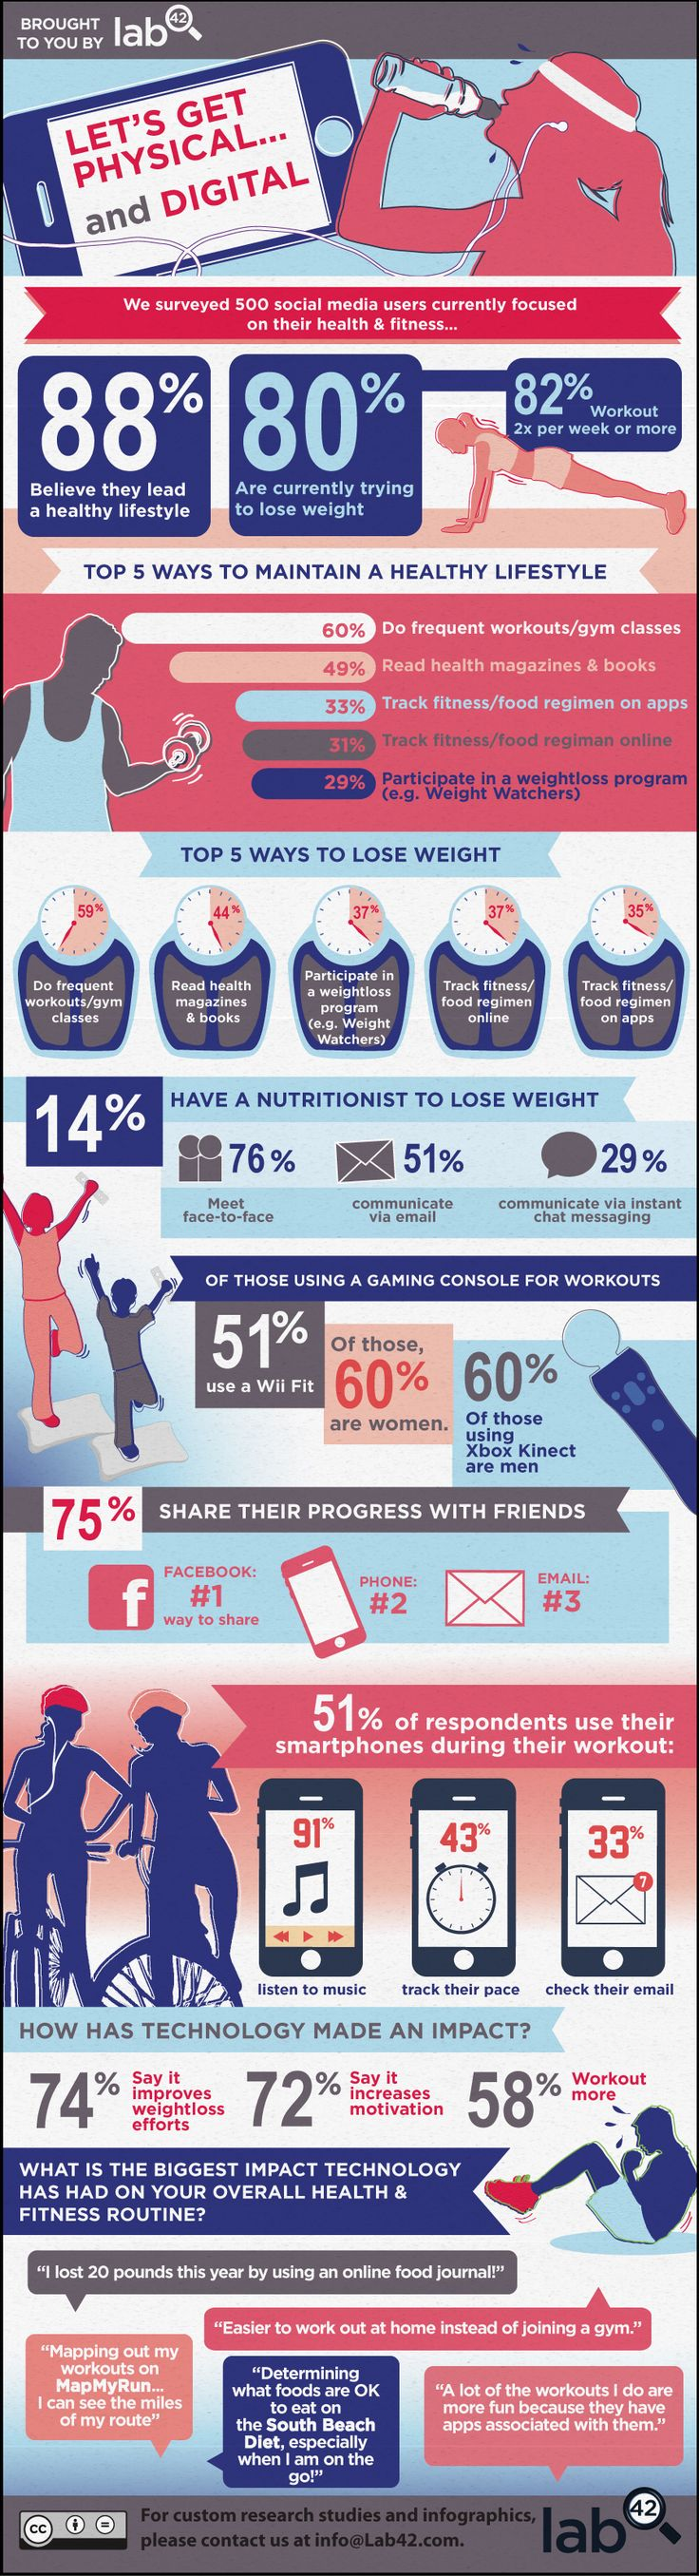 Smartphones can do just about anything, but can they help you lose weight? According to our latest survey, smartphones and technology are increasingly becoming an essential part of the workout process. People are using it in all sorts of ways, from downloading an email while running to sharing weight loss progress with friends.